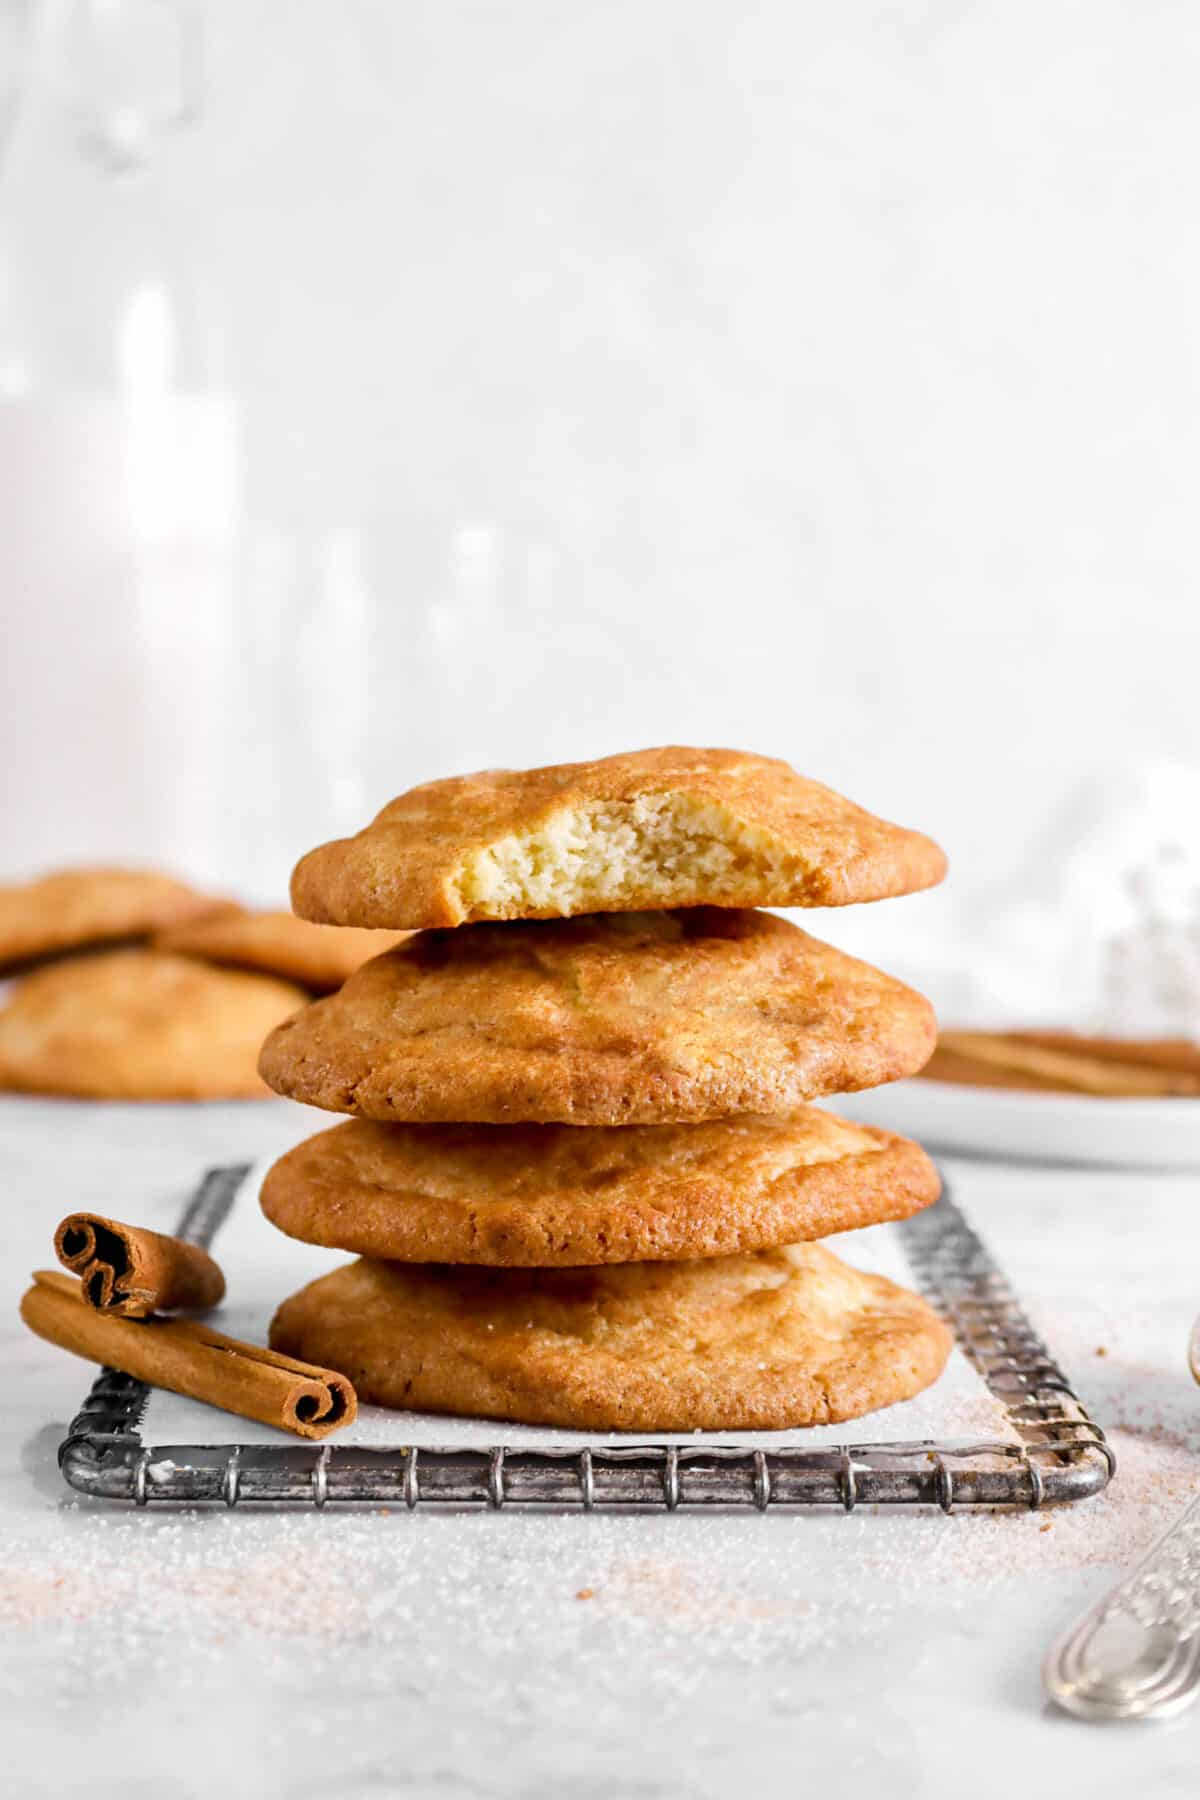 four stacked cookies with a bite taken out of one on a wire cooling rack with cinnamon sticks and more cookies behind